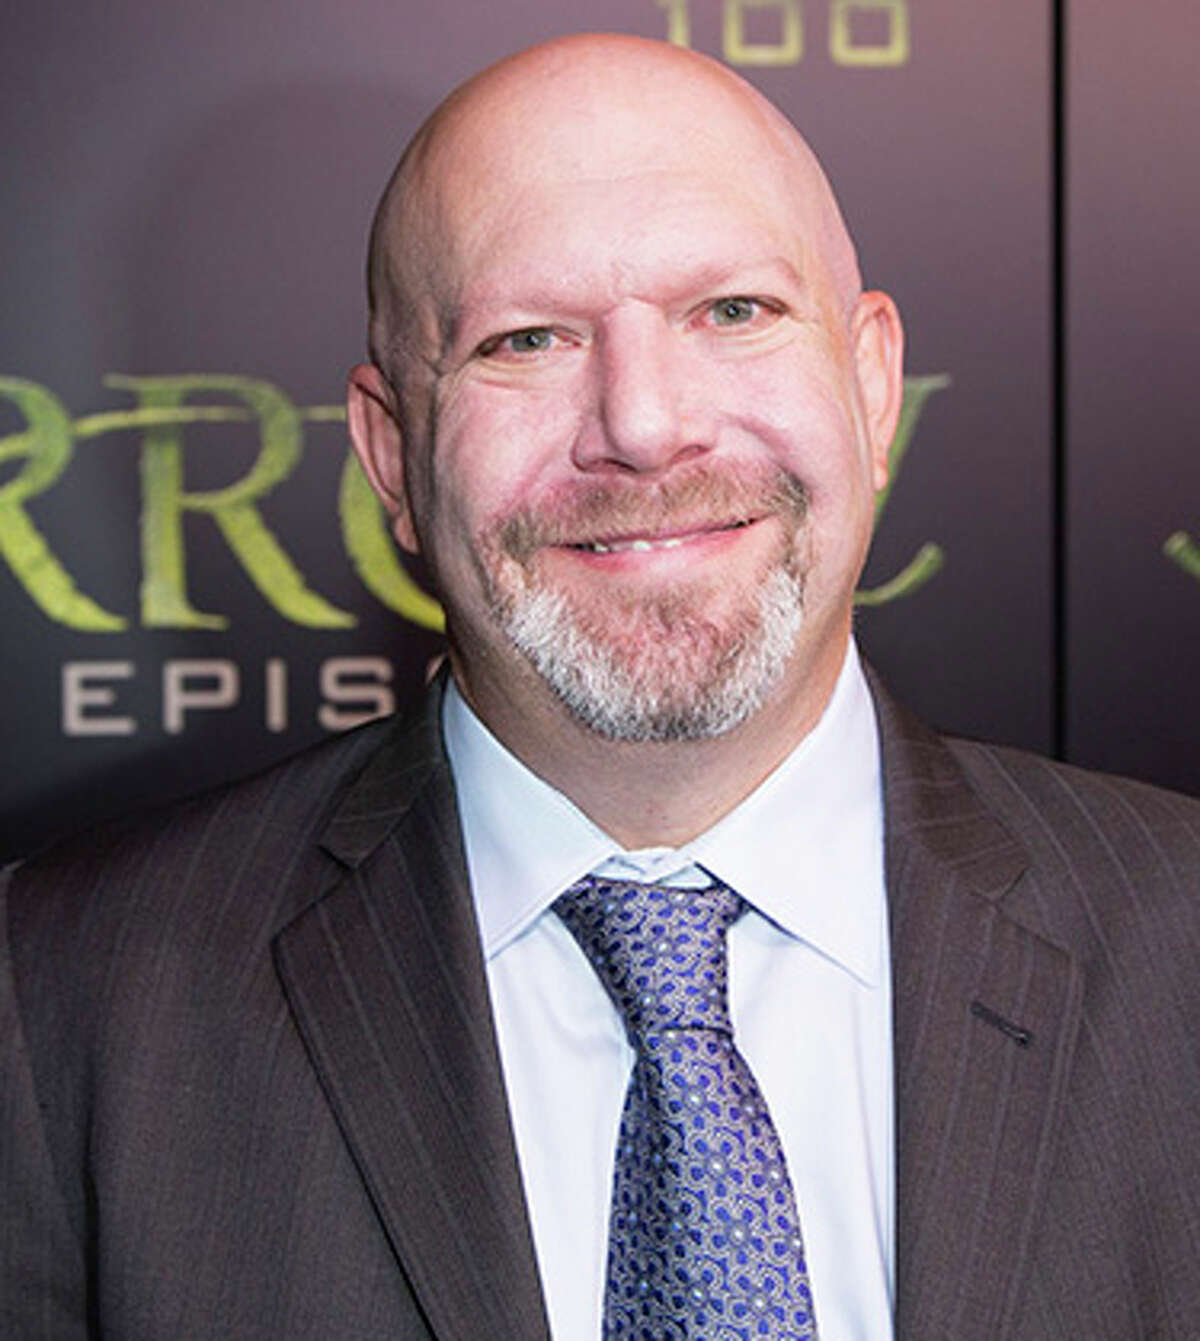 University at Albany alumnus and screenwriter/producer Marc Guggenheim, class of 1992, has donated $100,000 to the endowment of the New York State Writers Institute's Classic Film Series. The donation was announced on Tuesday, Dec. 11, 2018.